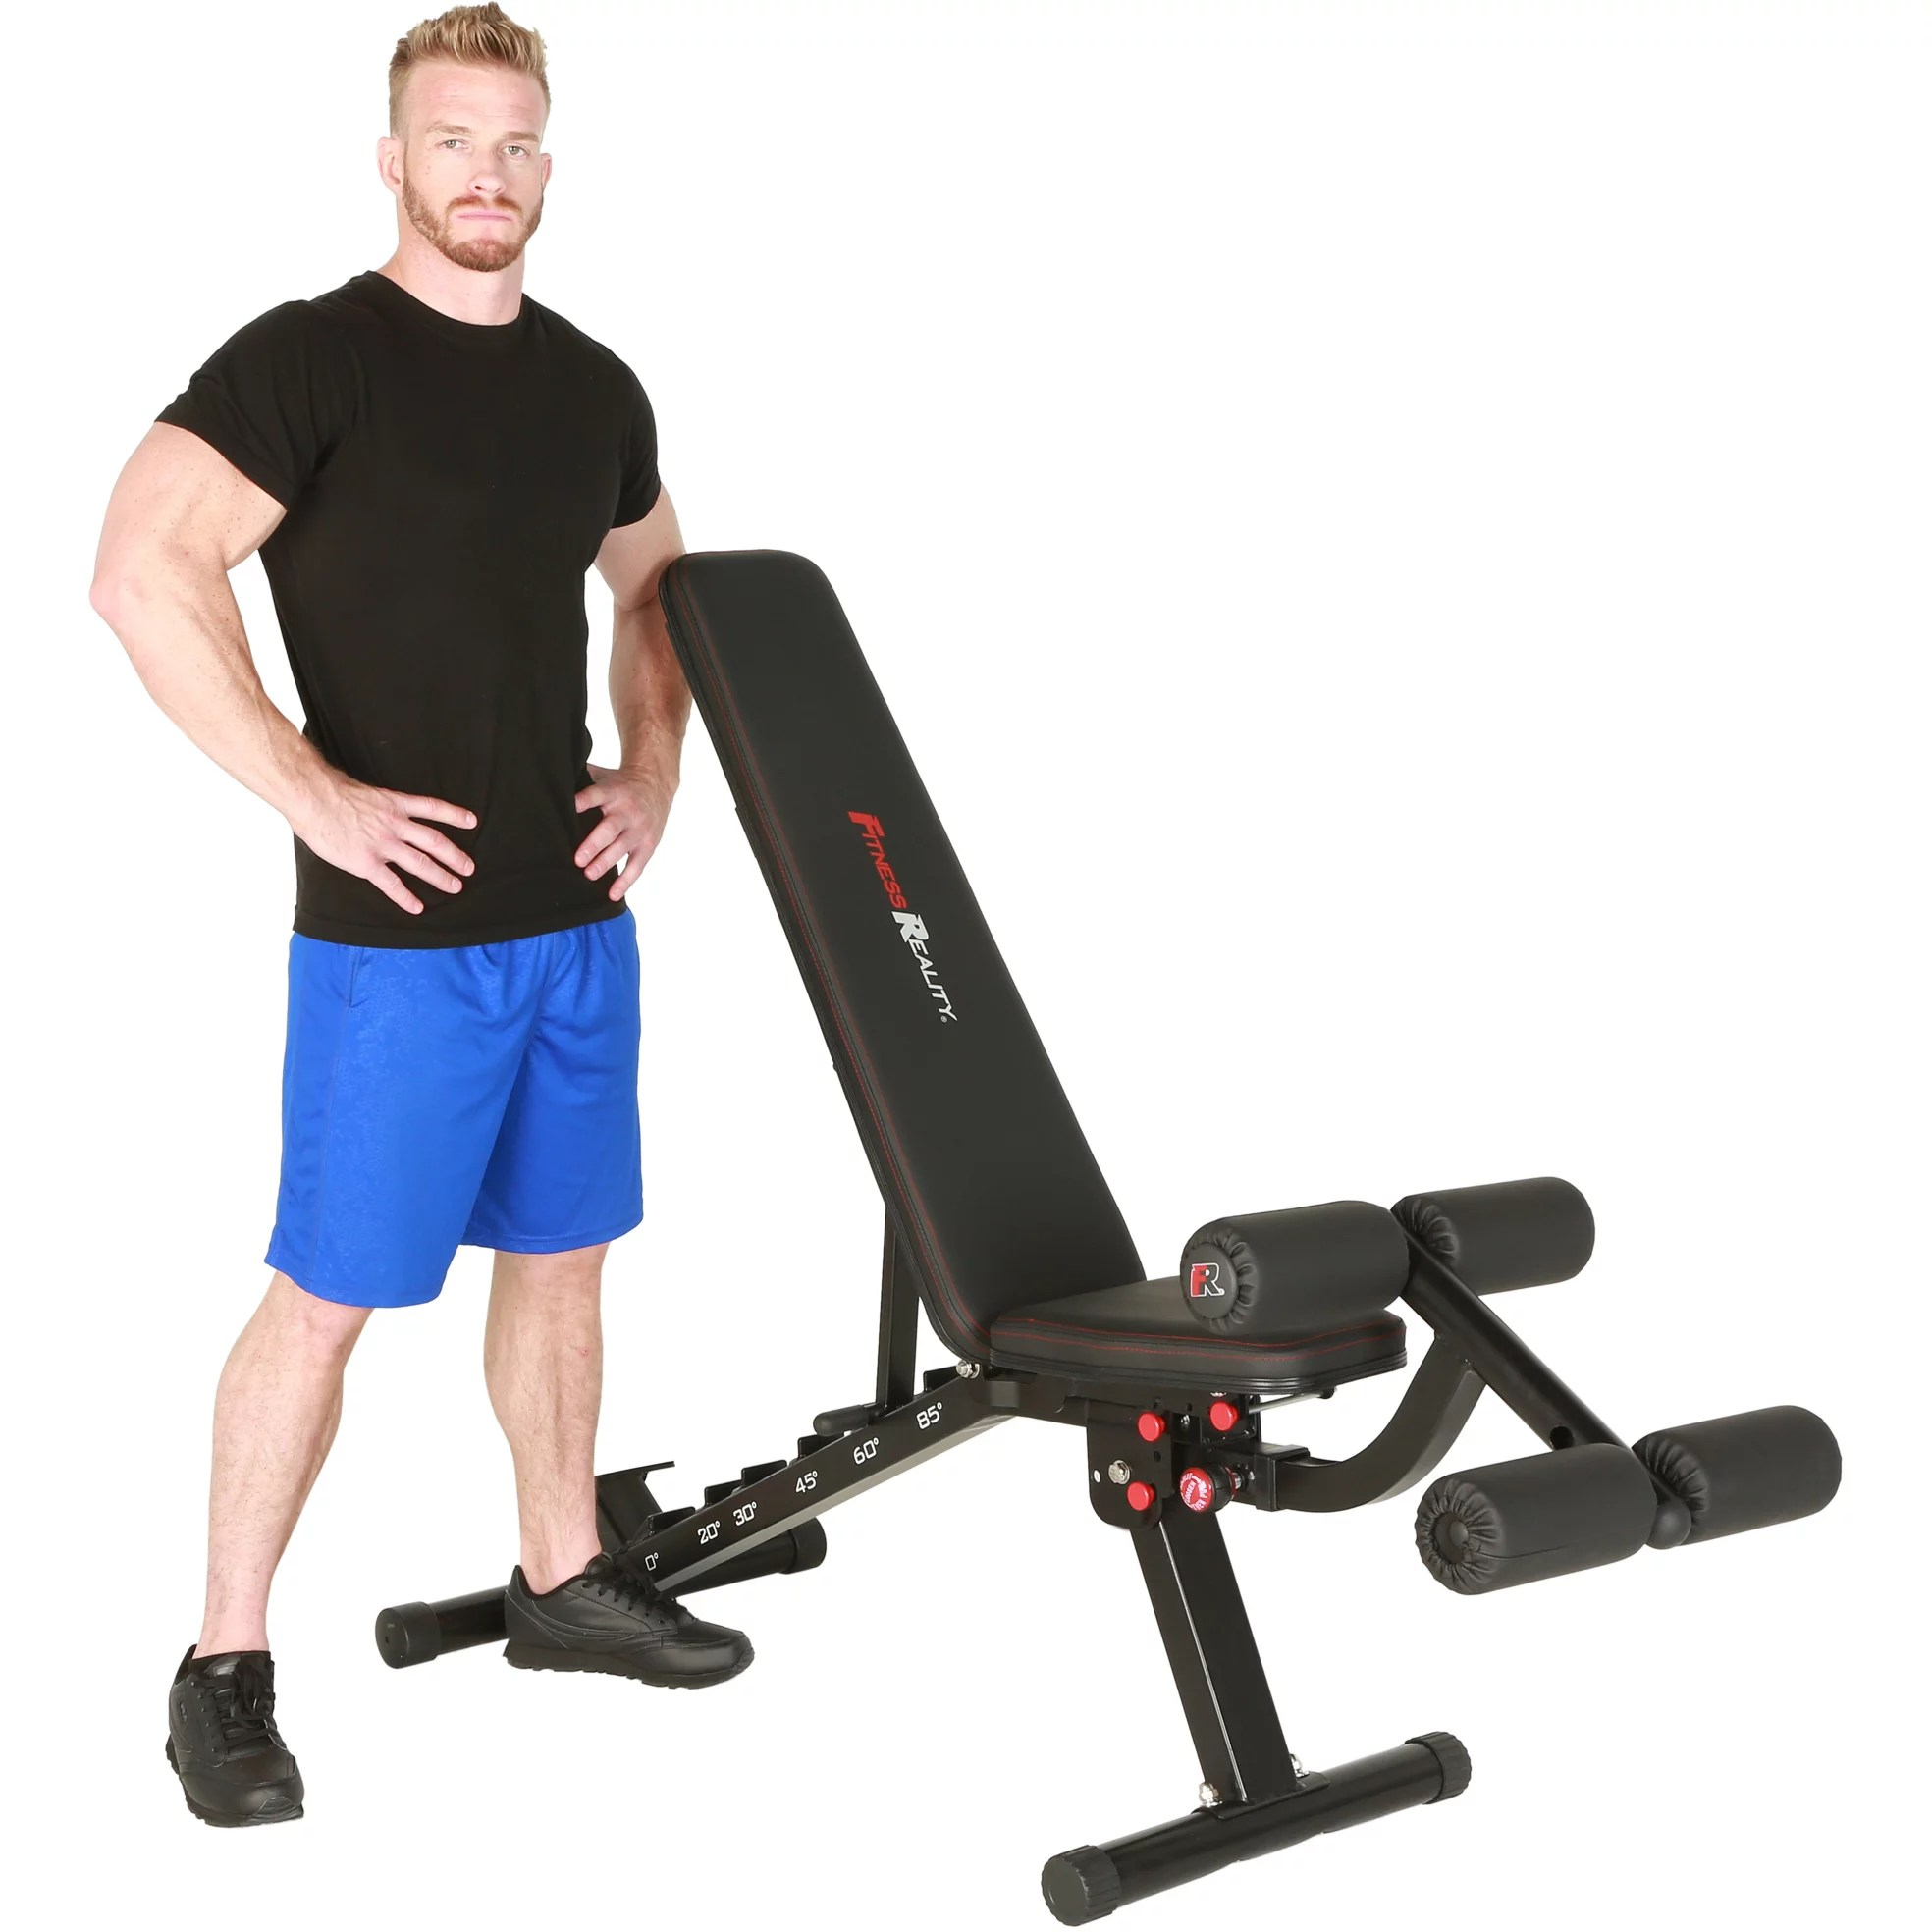 Fitness Reality 2000 Super Max Xl Adjustable Utility Fid